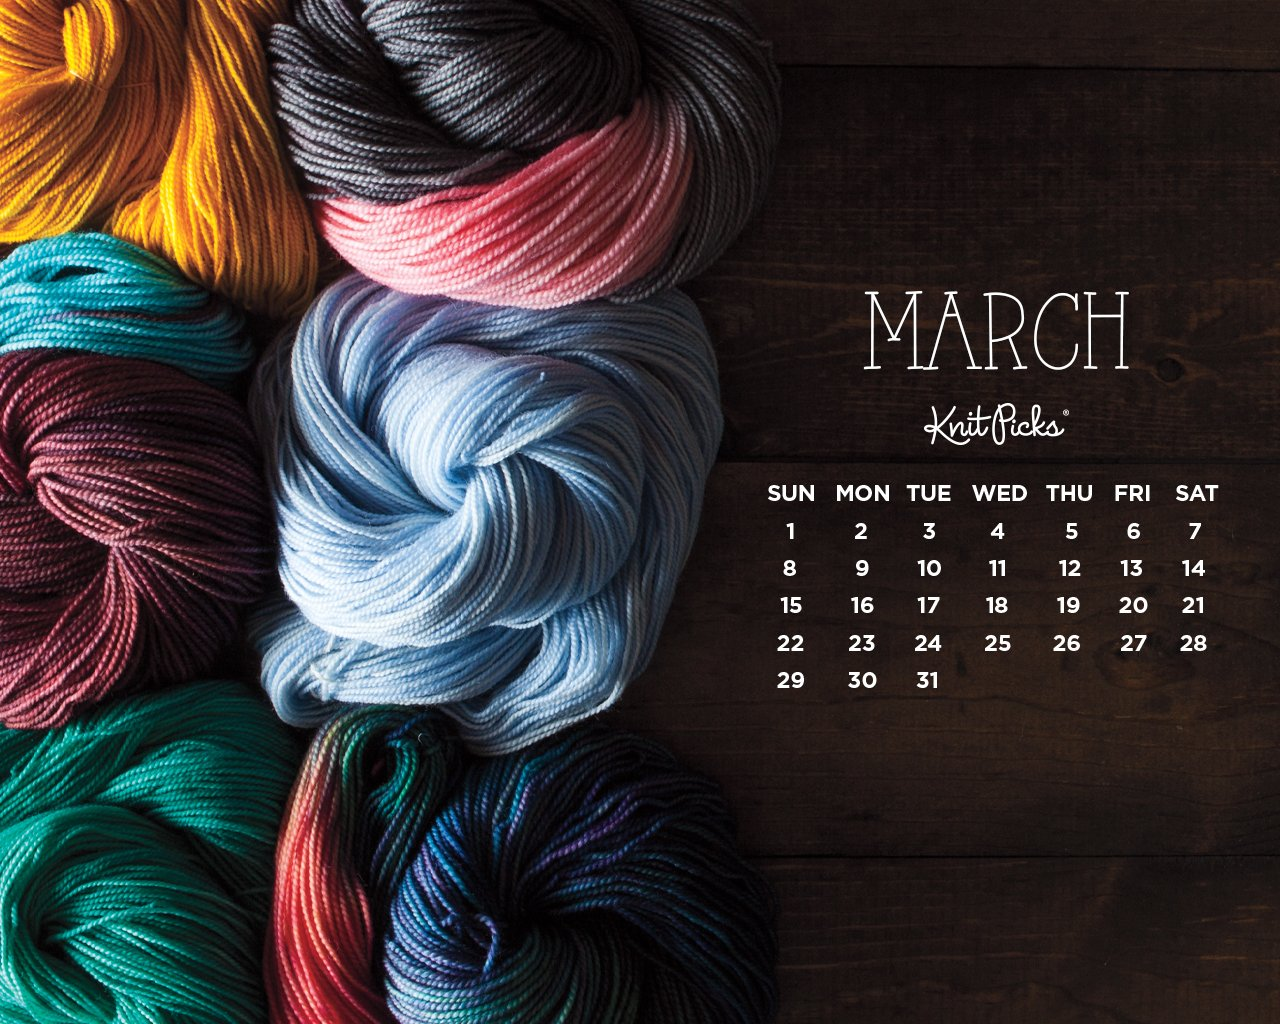 To get the calendar background of your choosing for smart phones 1280x1024